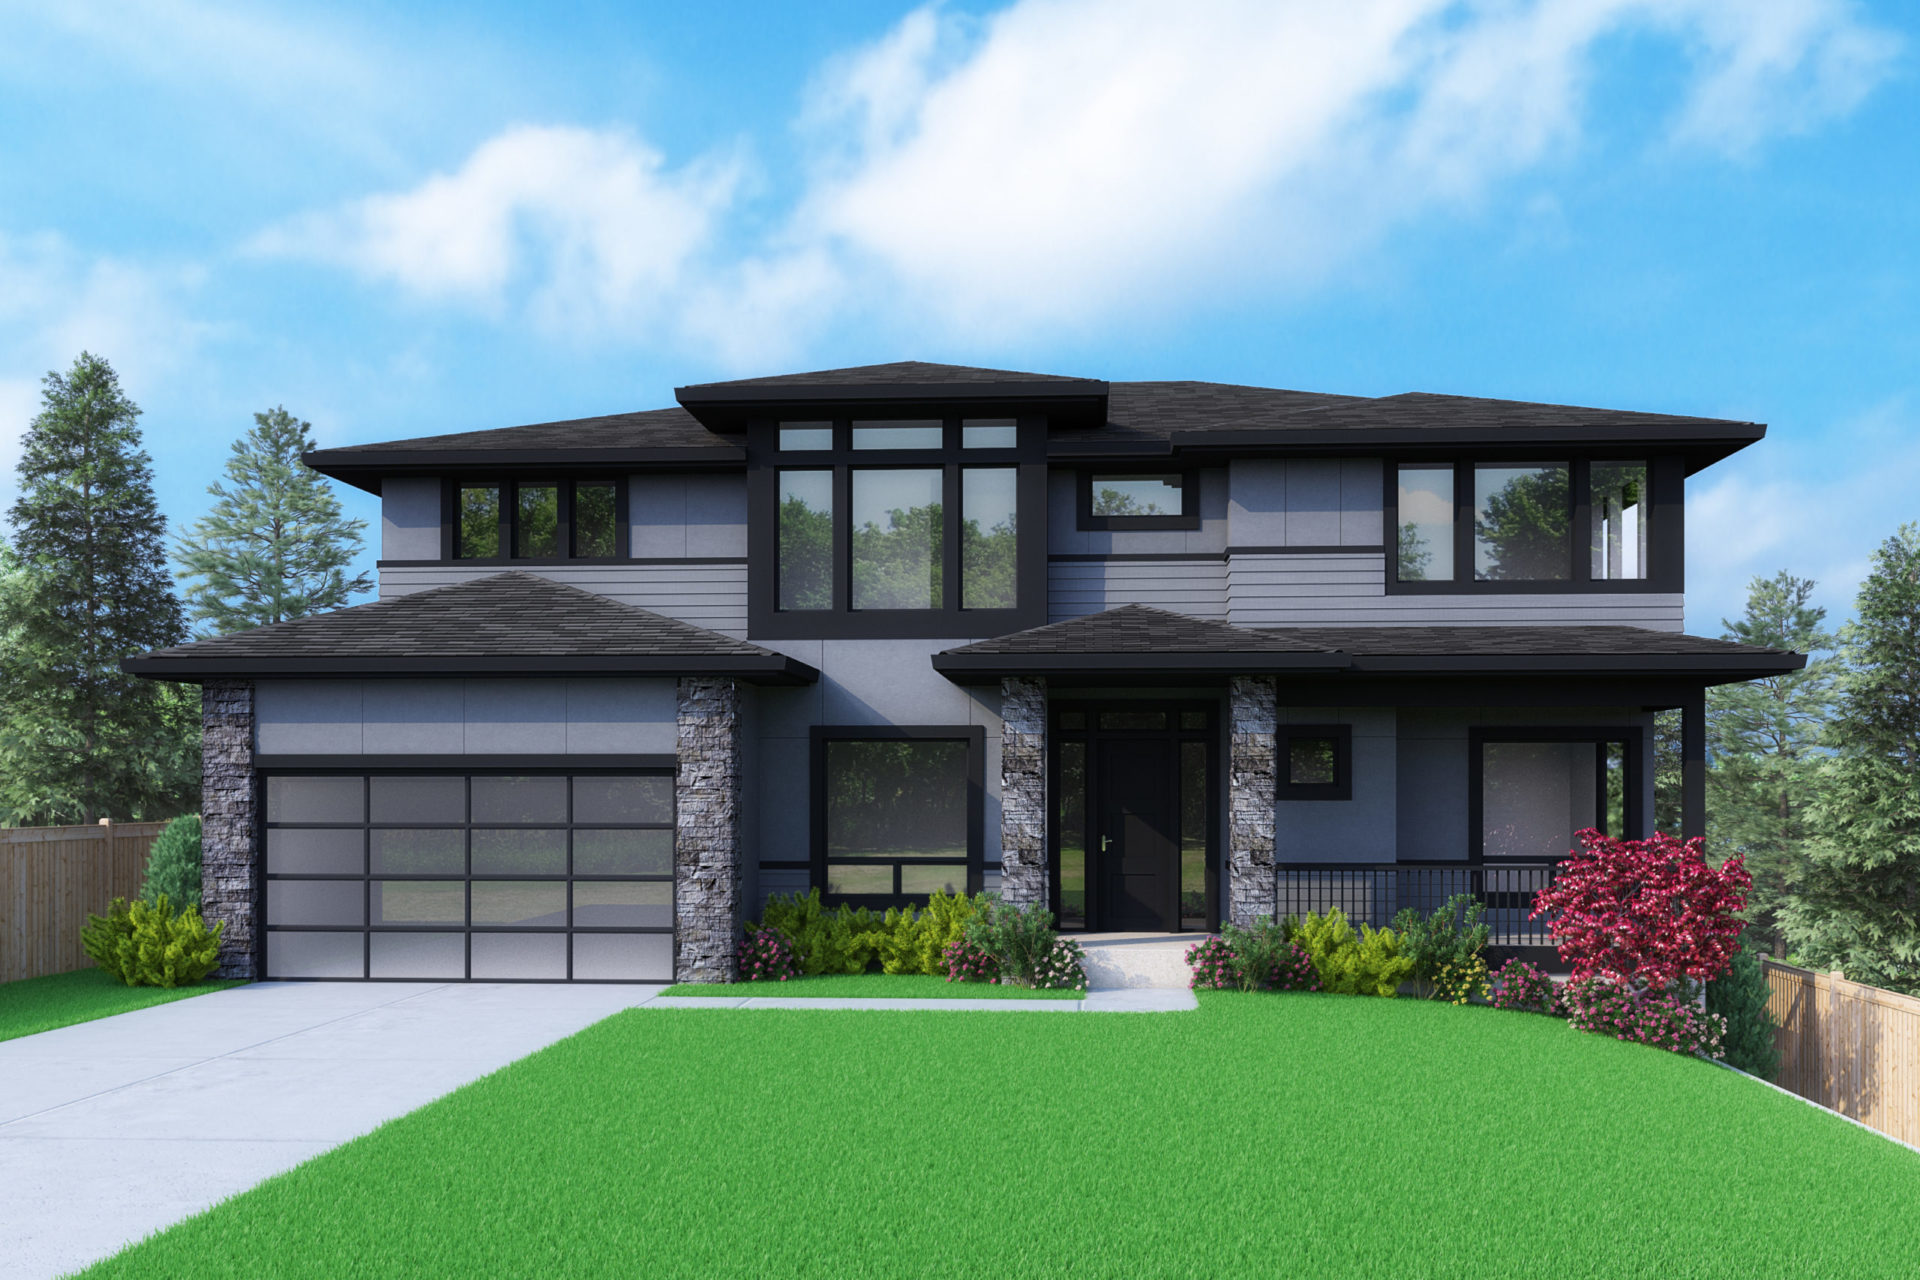 View our new luxury home construction on 3848 120th Ave SE, in Bellevue, WA from MN Custom Homes